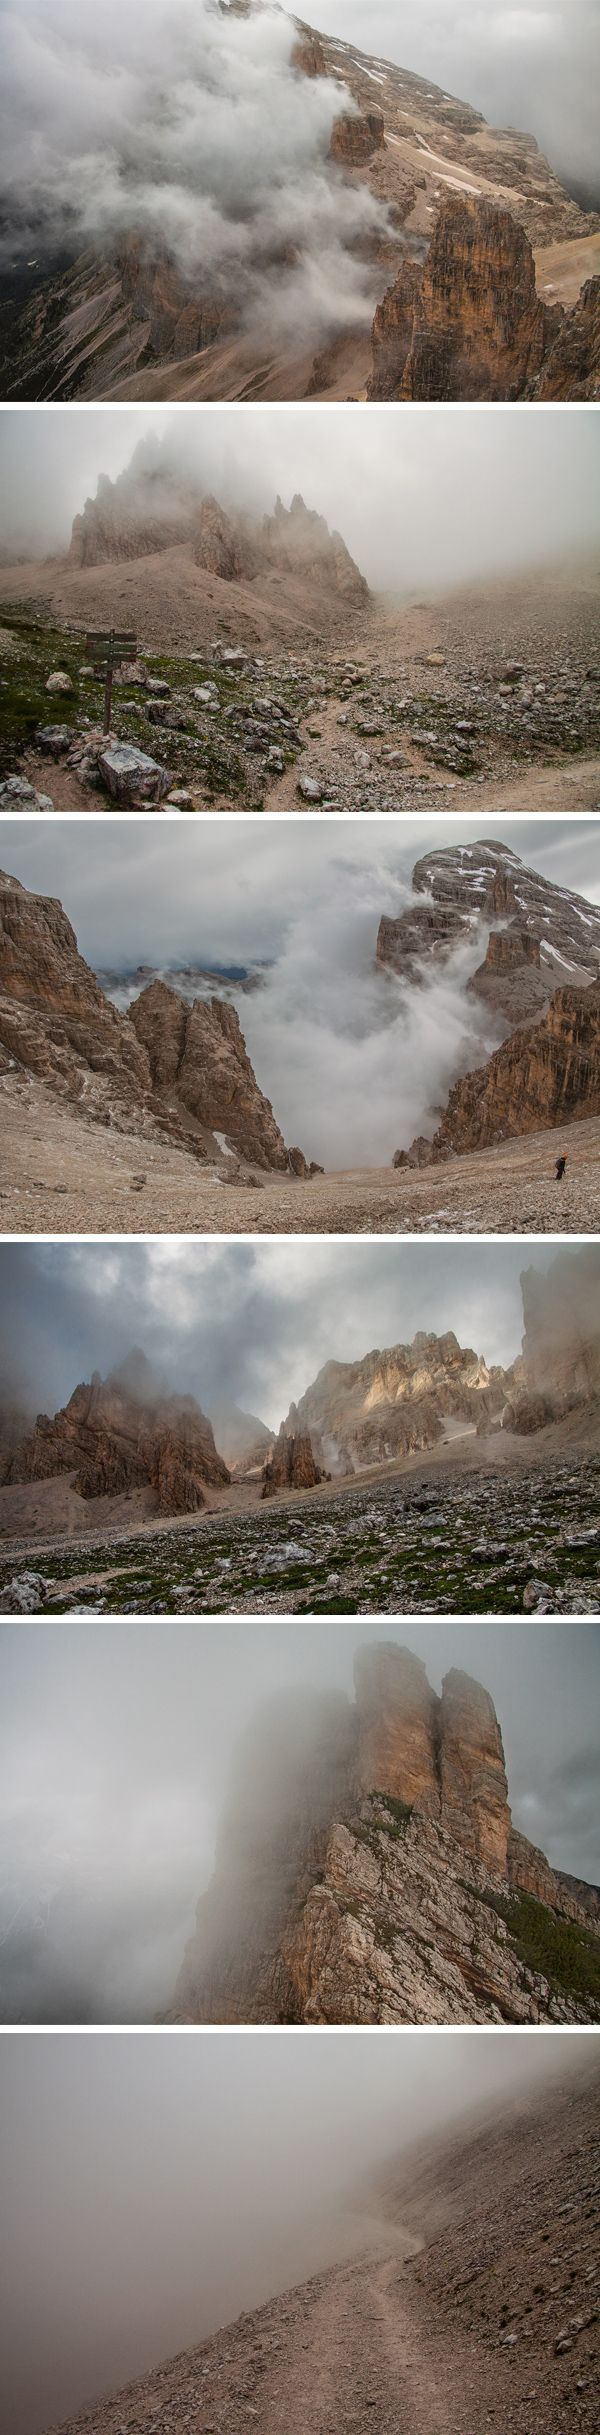 I'm happy to share another collection of high quality nature photos, these ones taken in the Dolomites mountain range...